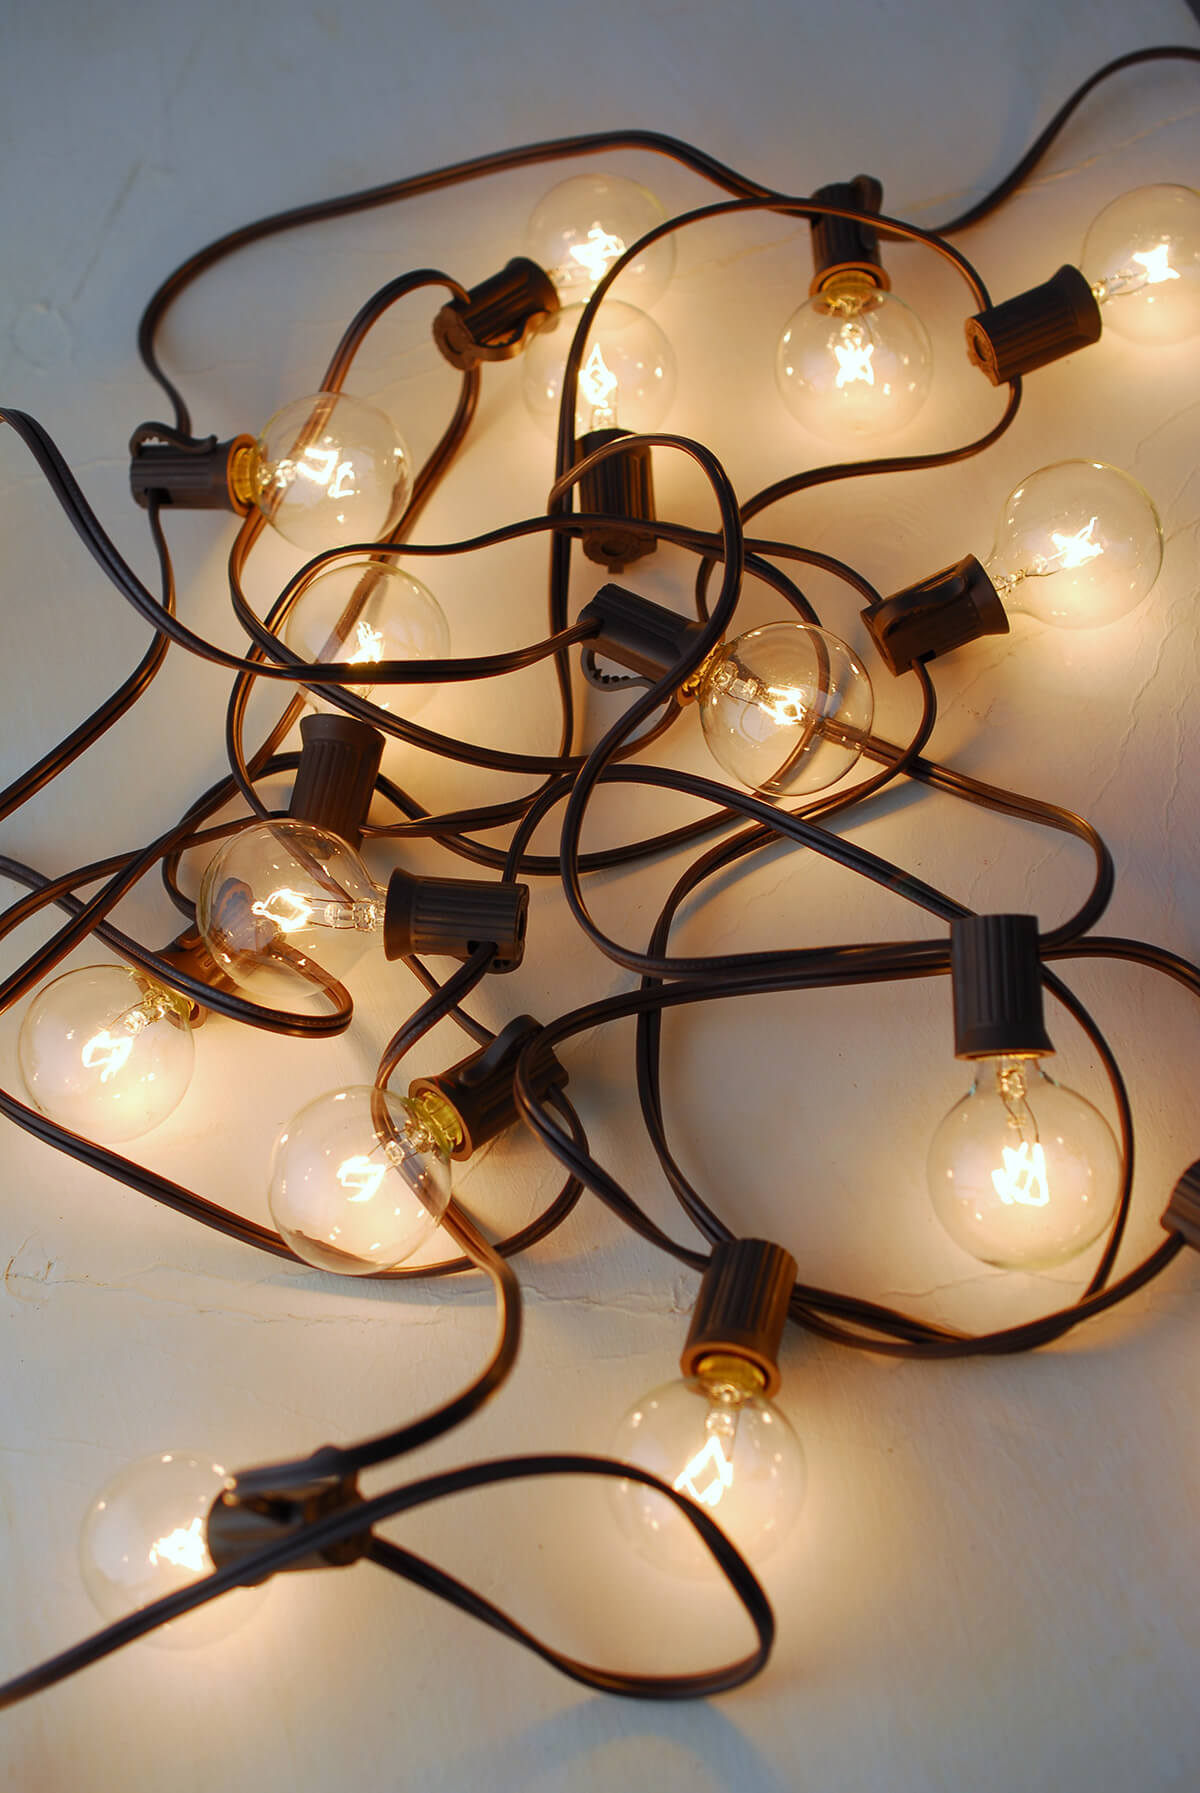 Gerson 20CT G40 Cafe Globe Light Set 19ft Brown Cord, End To End, UL